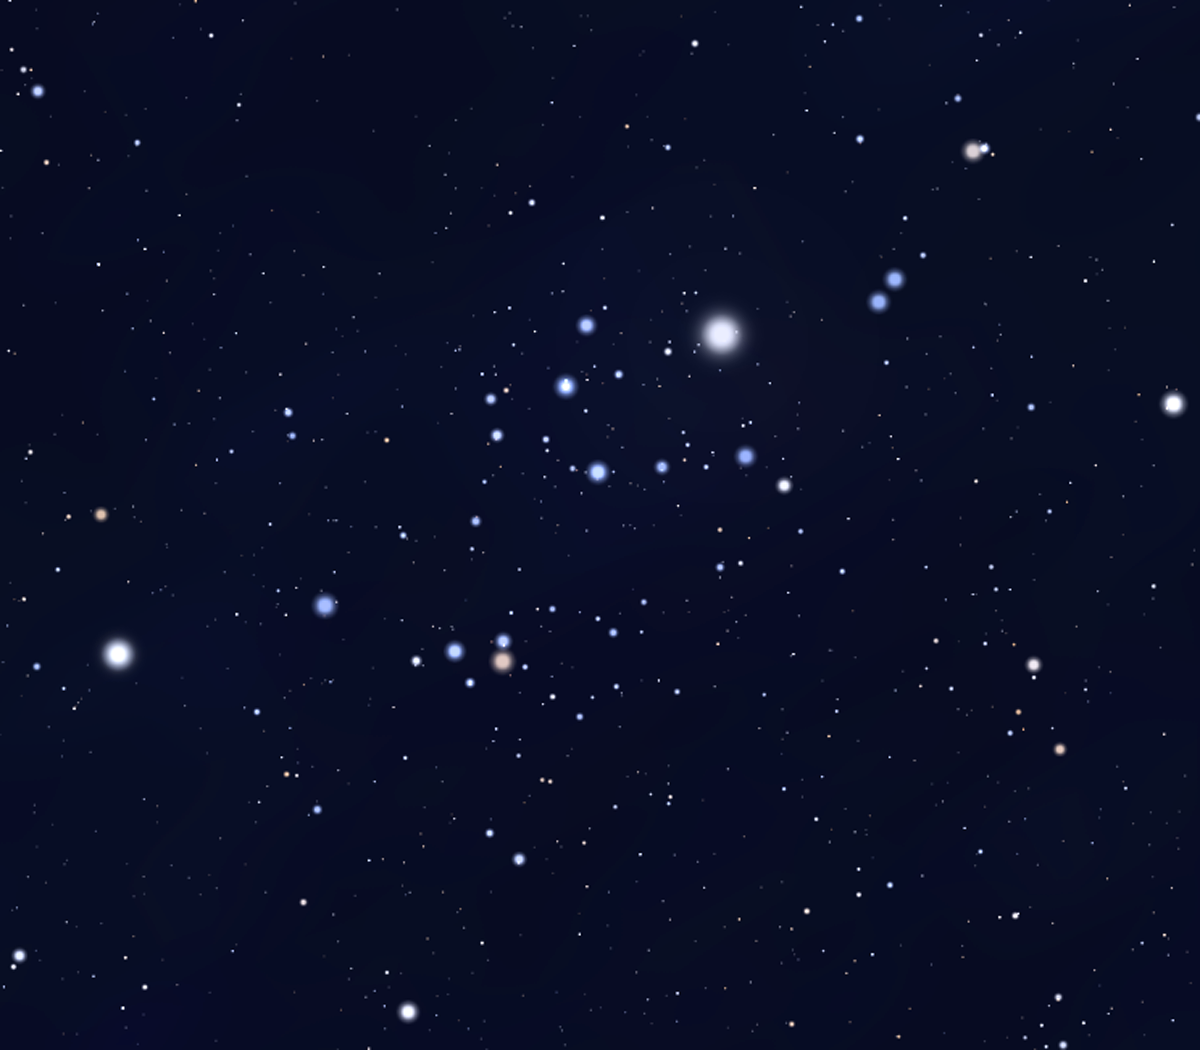 alpha star cluster - photo #4